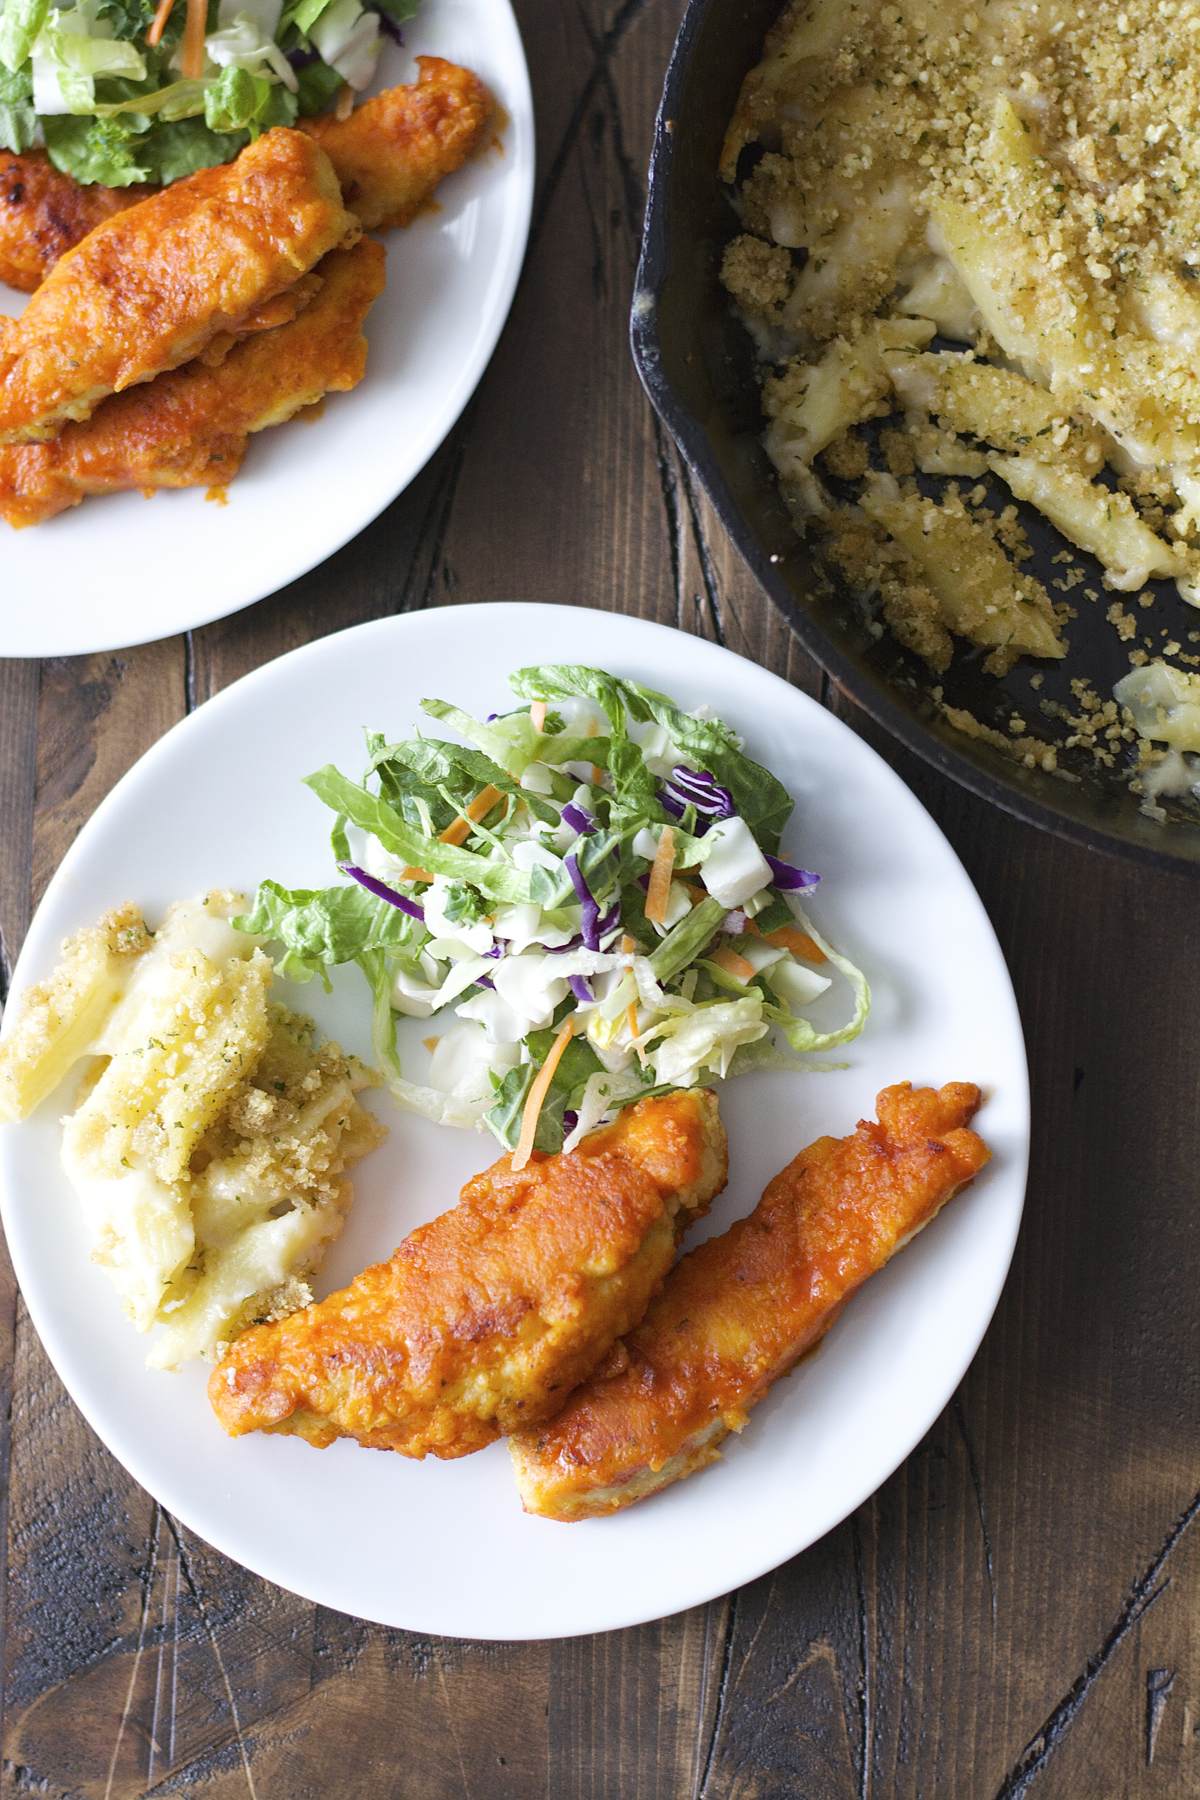 Overhead view of two plates of baked buffalo chicken tenders, salad, and mac n cheese.